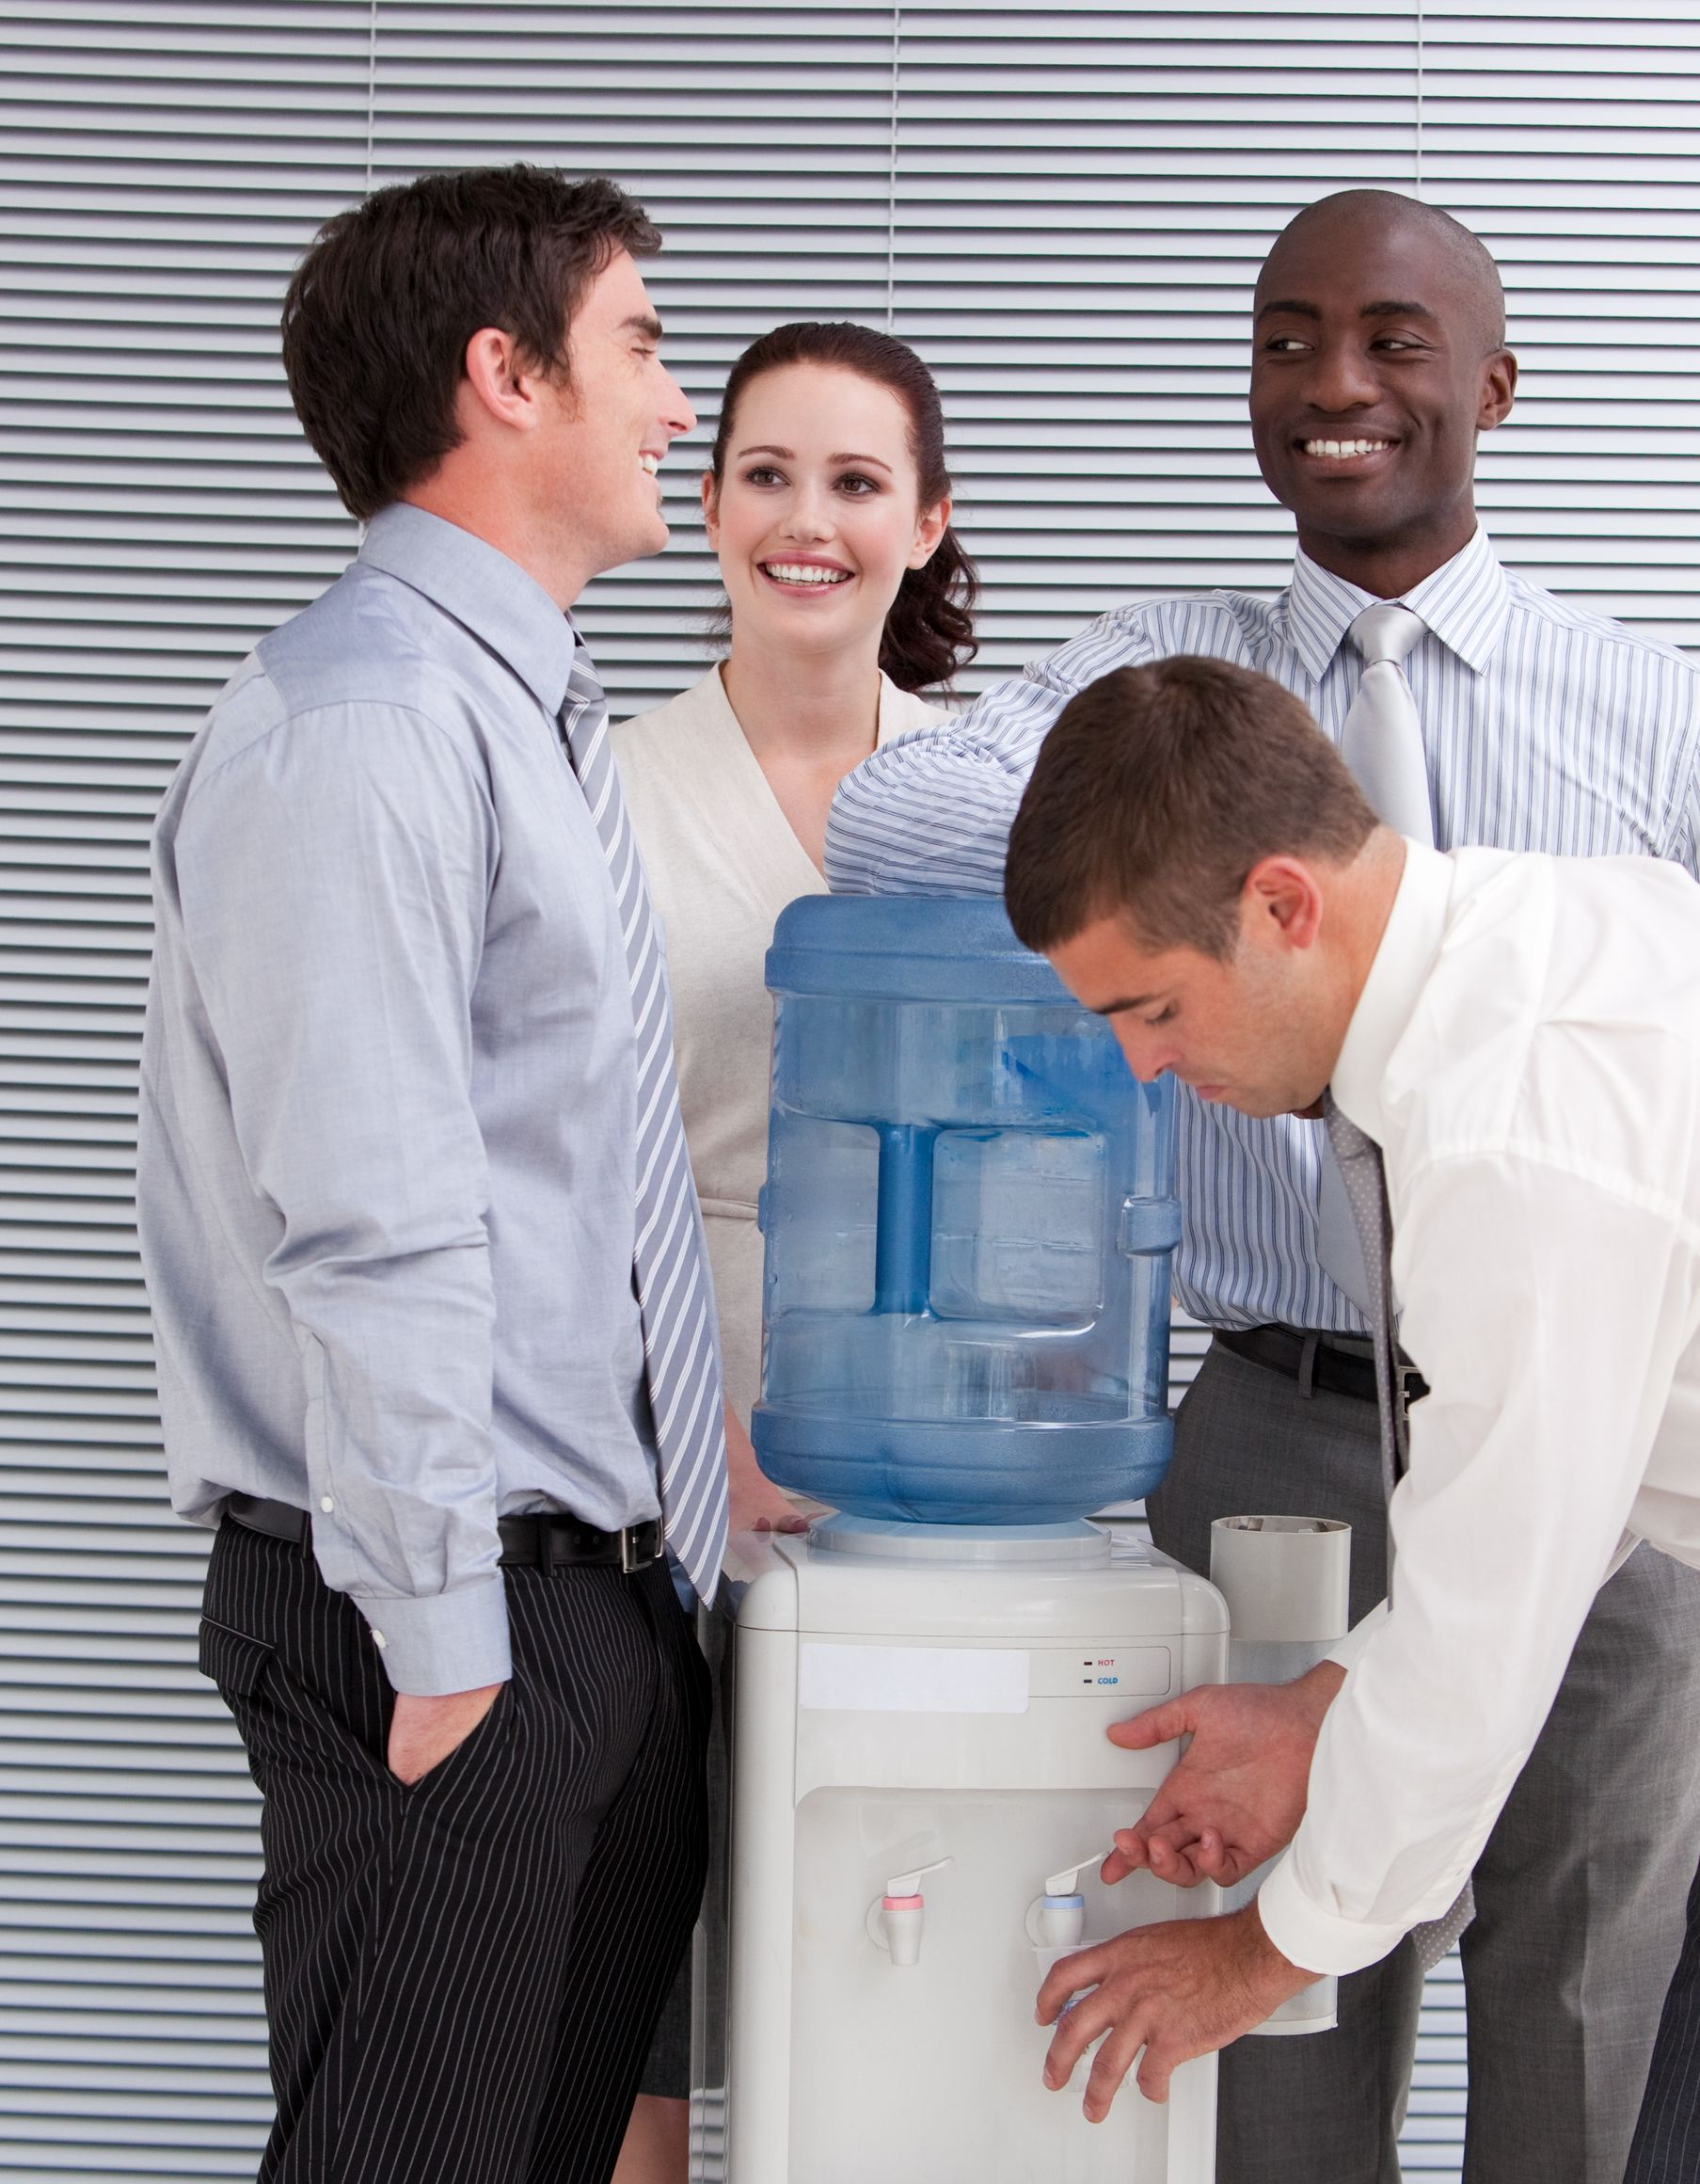 Why Does Your Office Need A Water Cooler